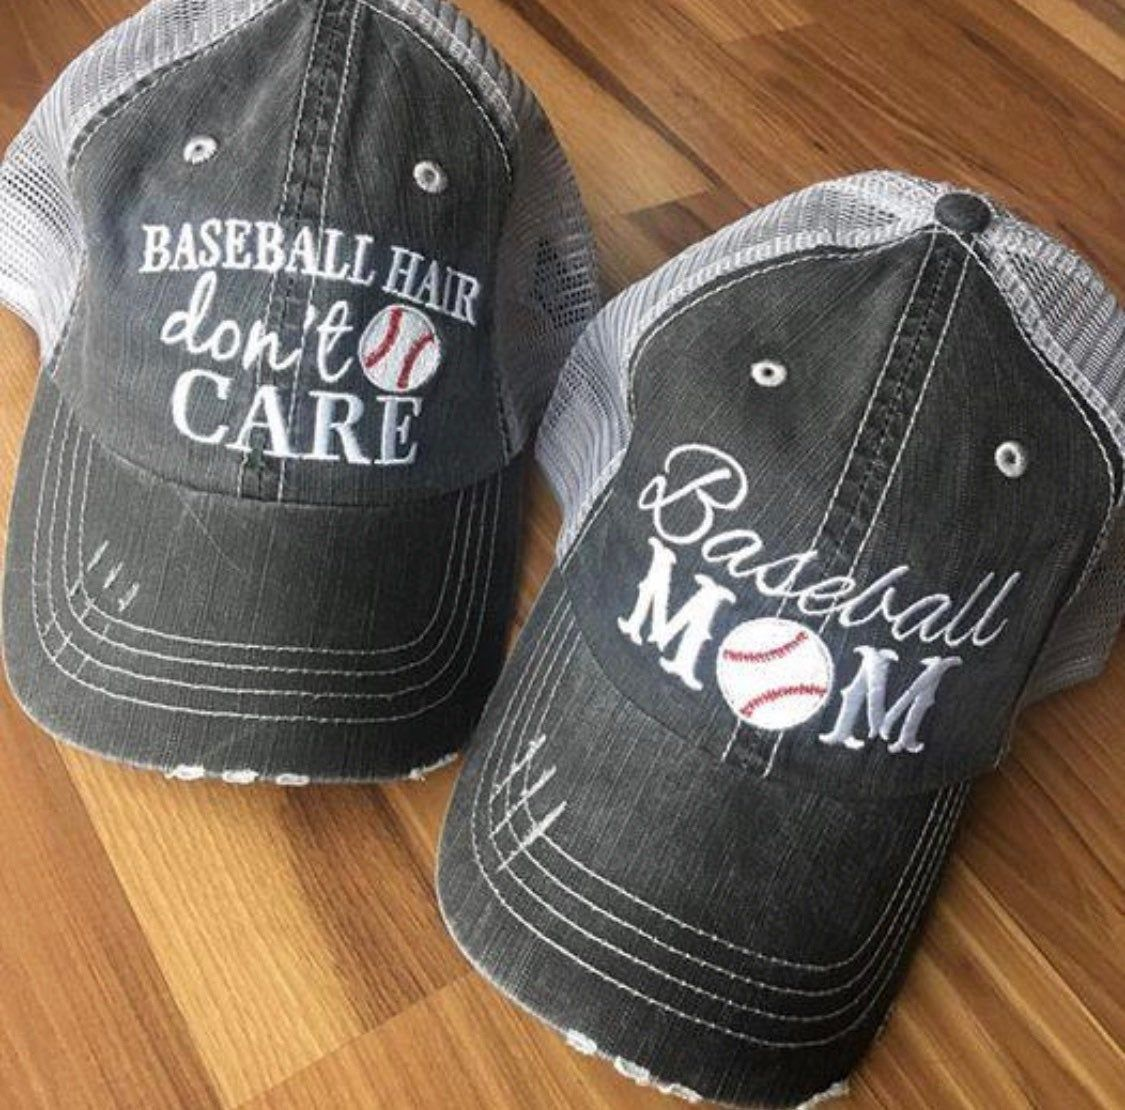 Photo of Baseball hats! Baseball hair don't care • Embroidered gray distressed unisex adjustable trucker caps • Baseball mom • Gameday • Chicago